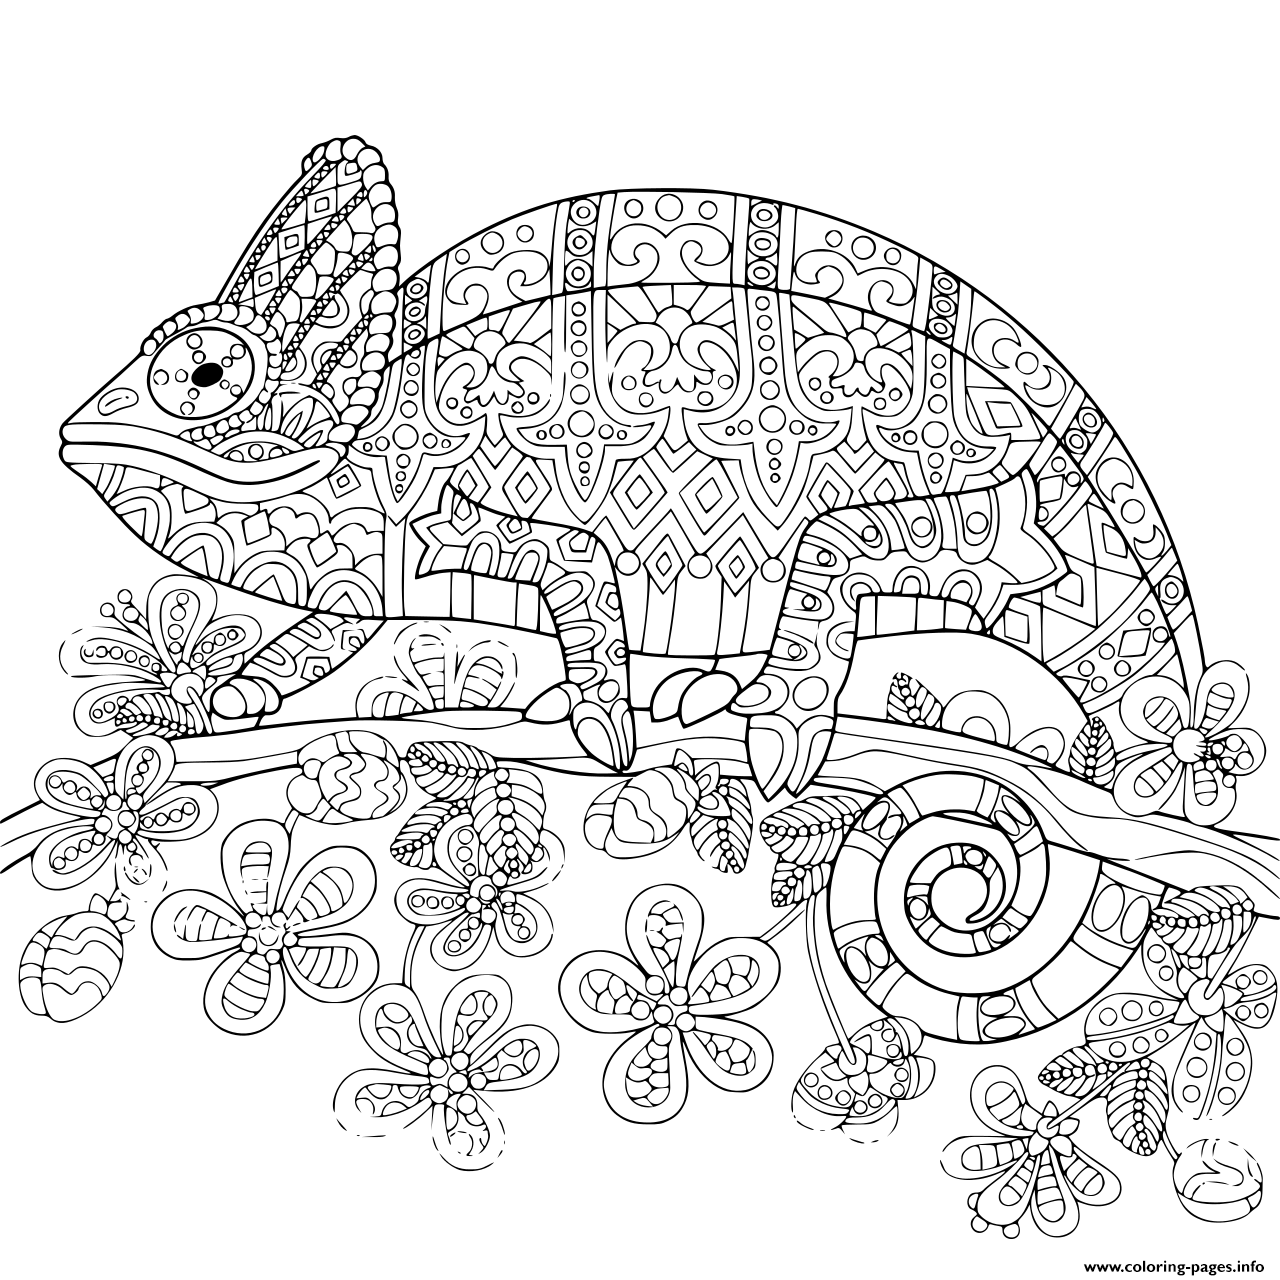 Chameleon Mandala Coloring Pages